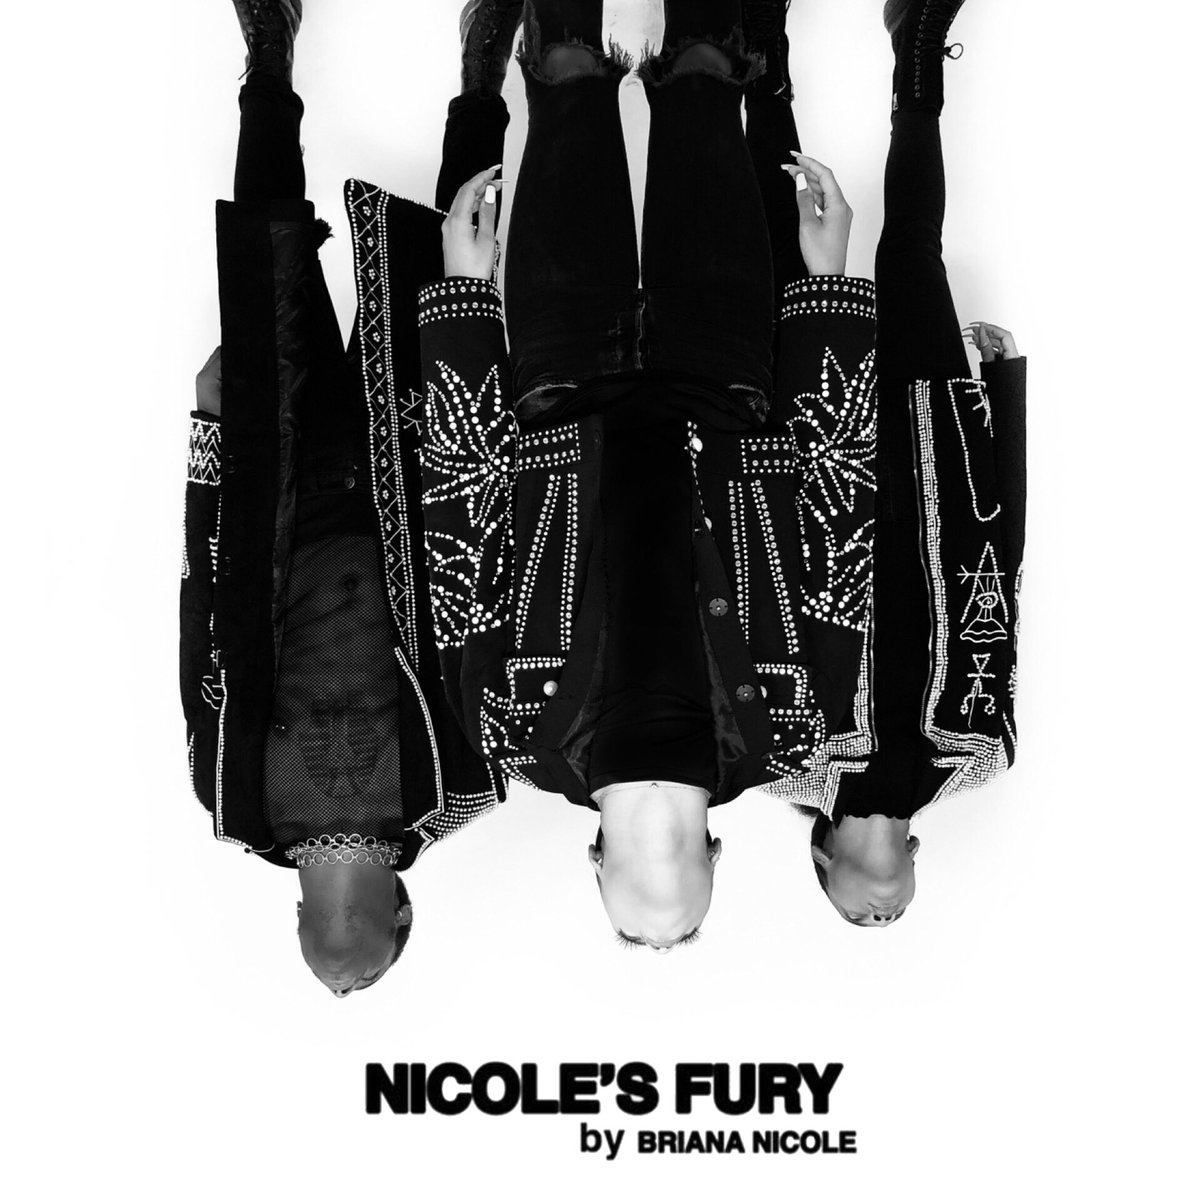 Image result for Nicole's fury""